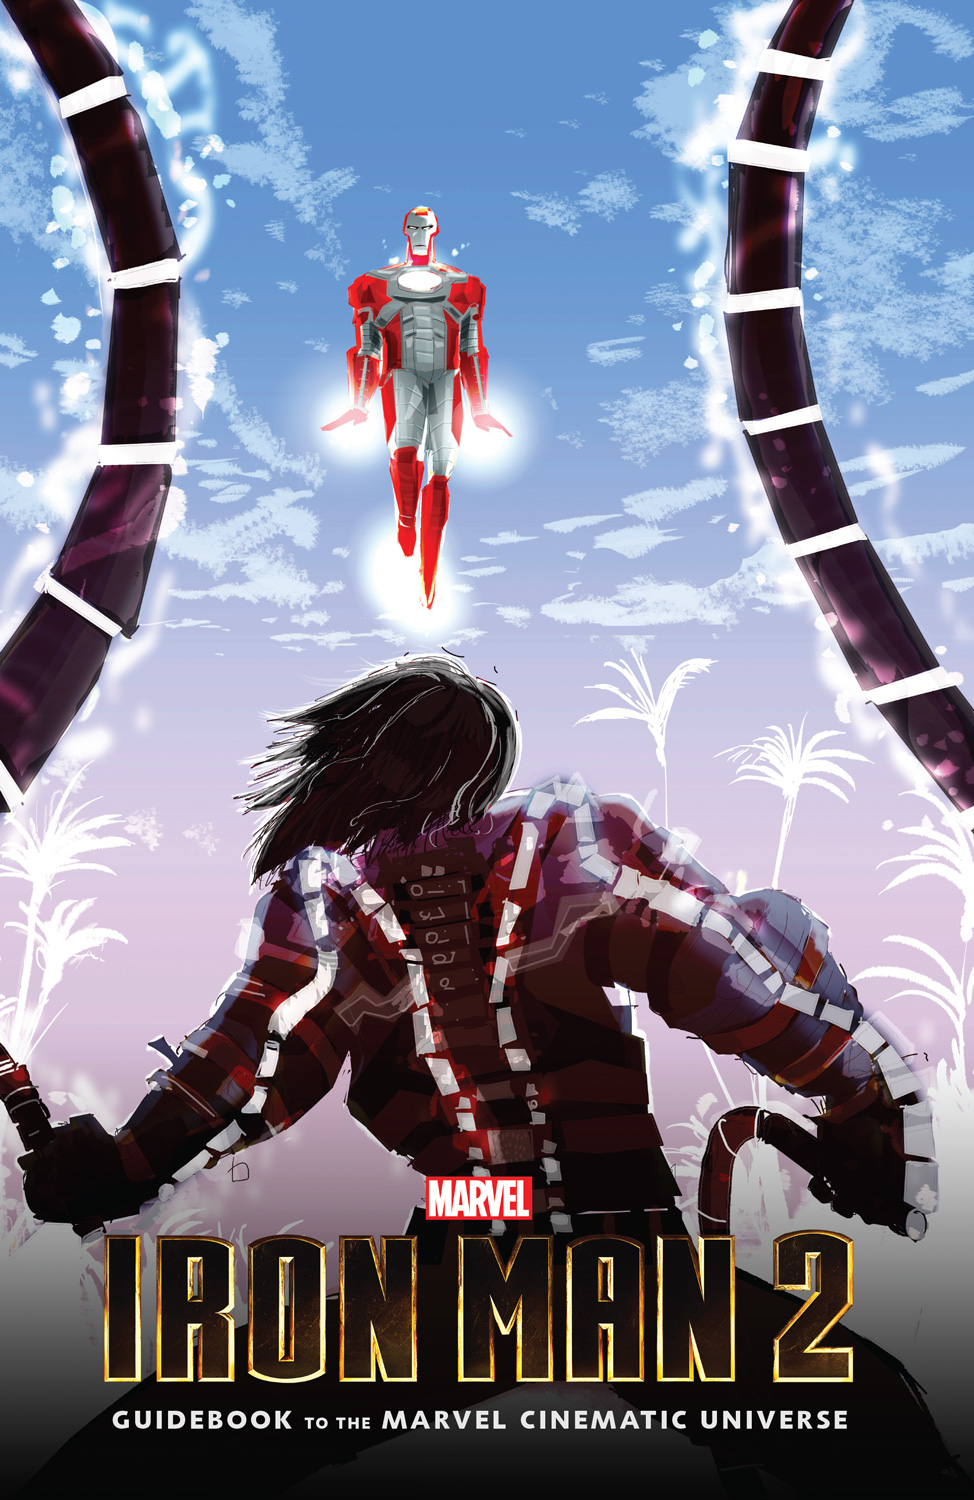 Guidebook_to_the_Marvel_Cinematic_Universe_Iron_Man_2_Cover